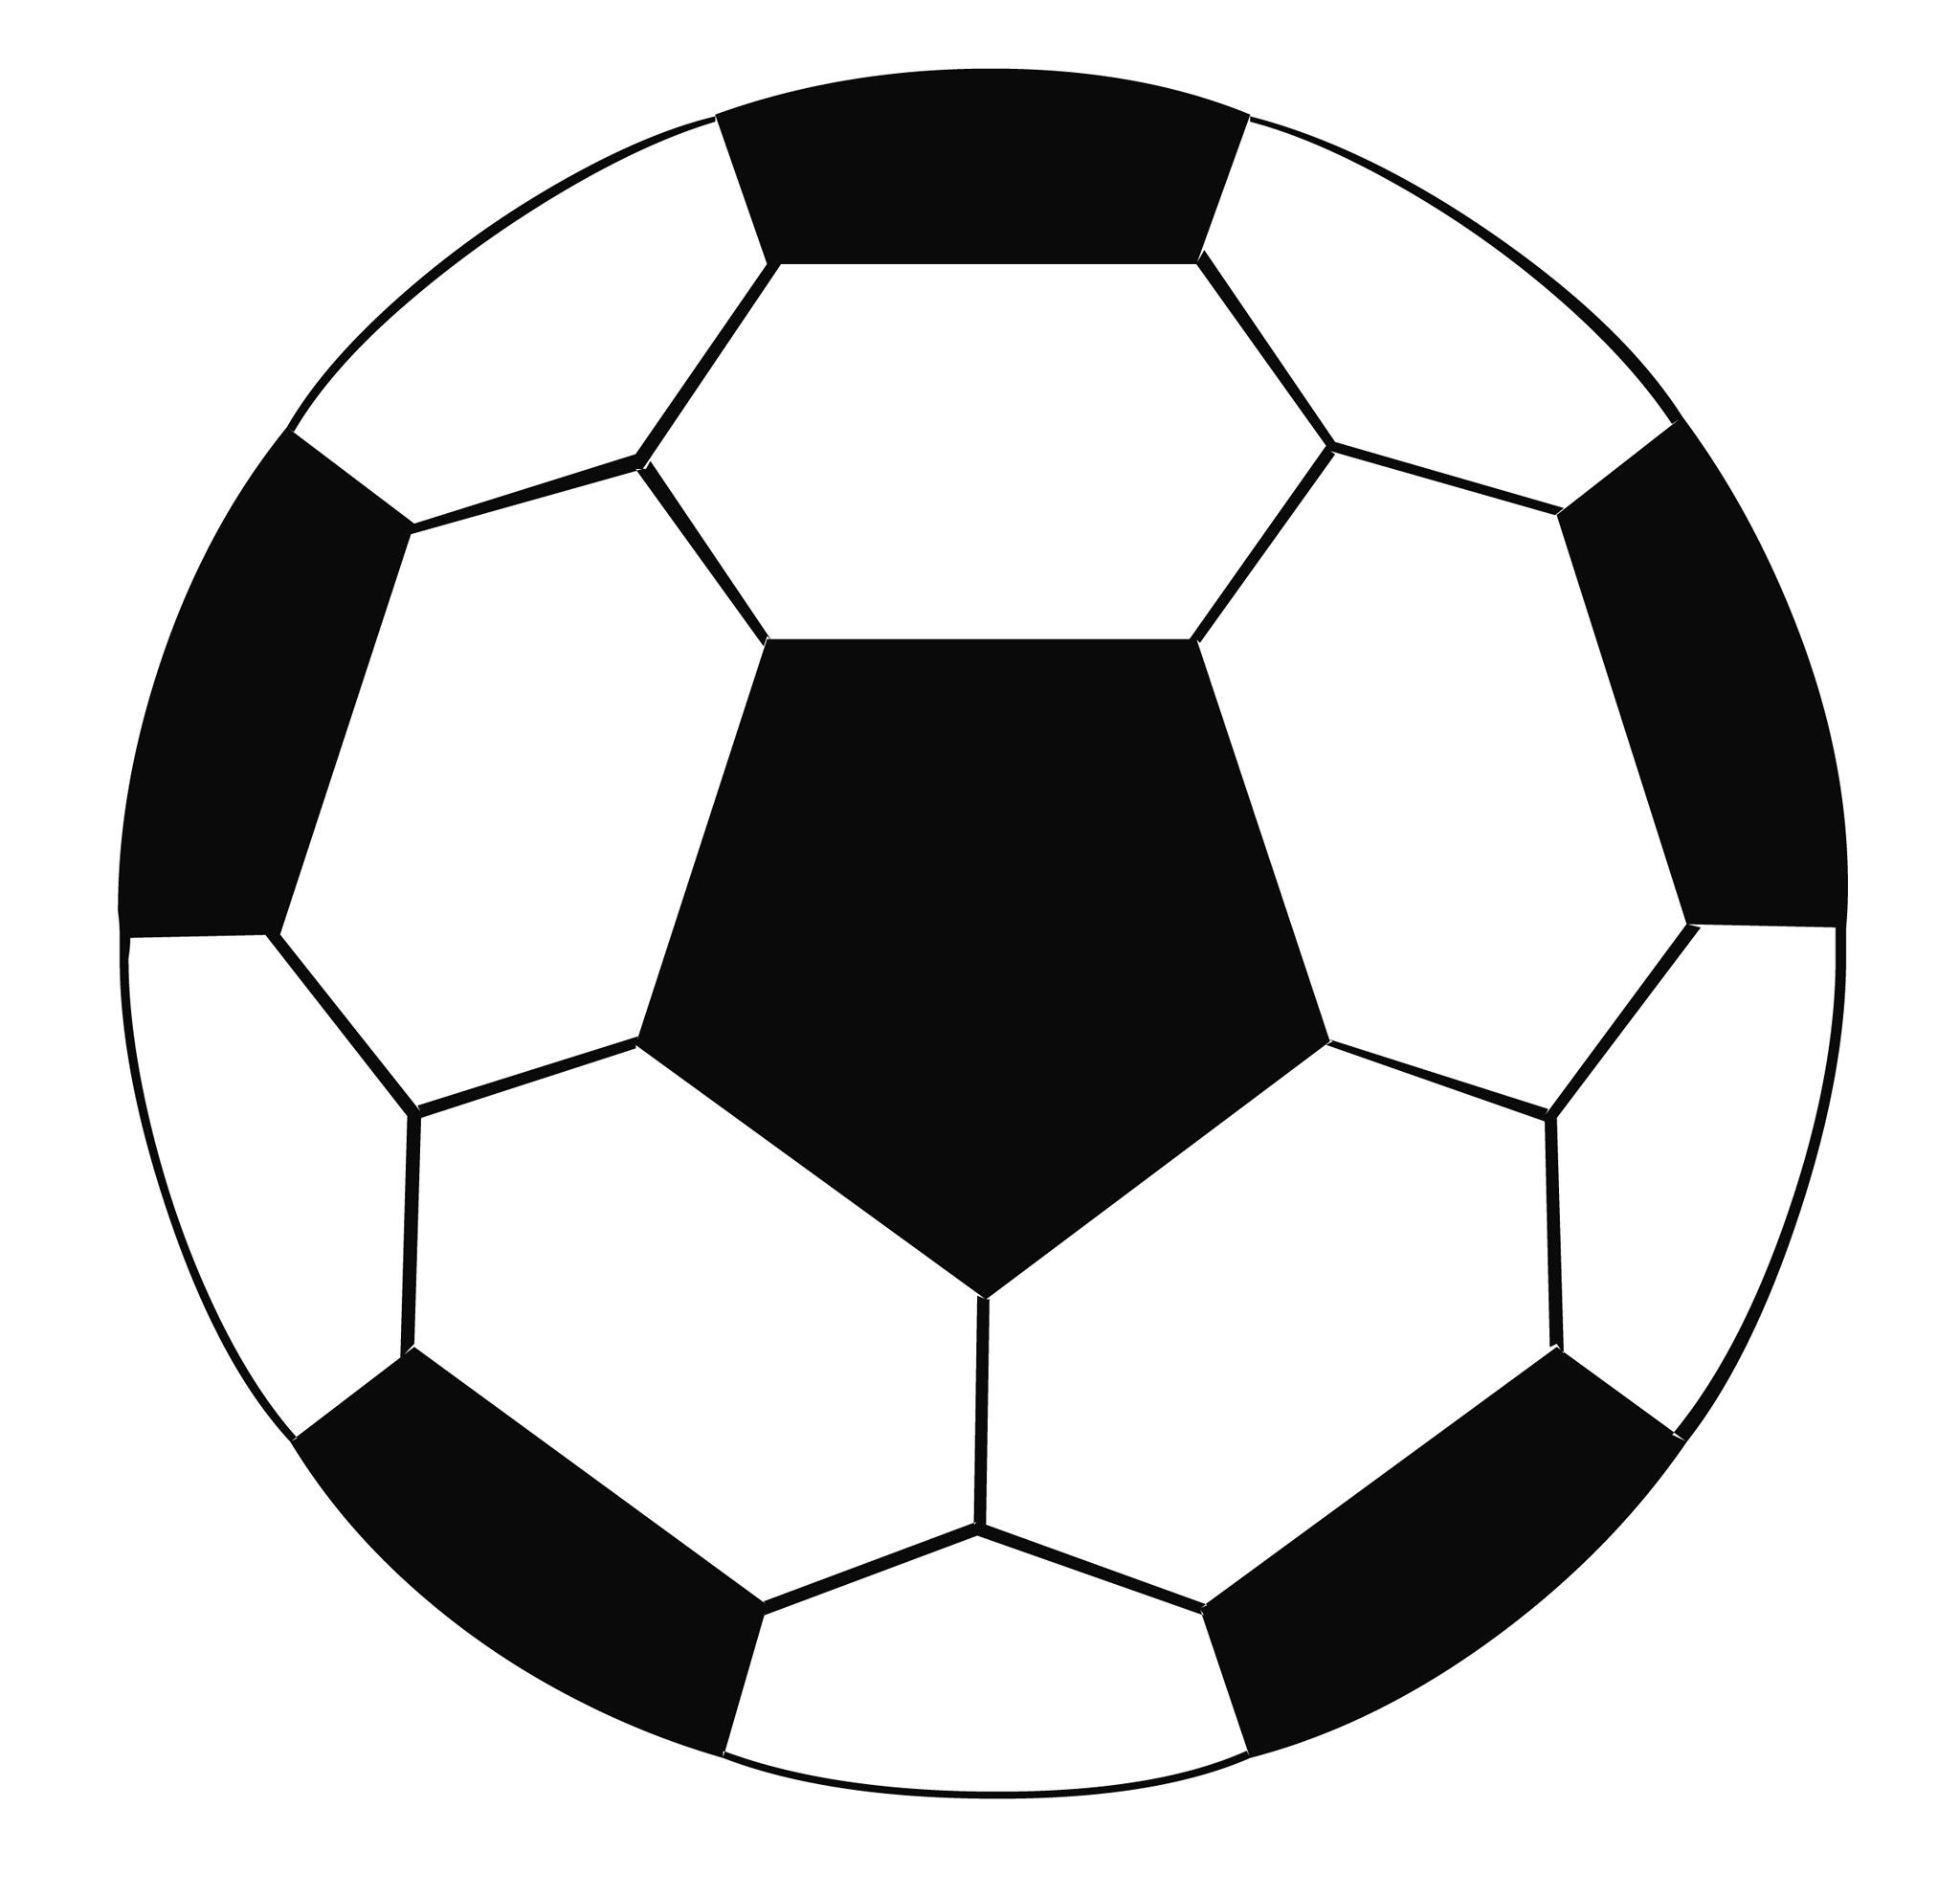 soccer ball clip art free large images pinteres rh pinterest com soccer ball clip art black and white soccer ball clip art black and white